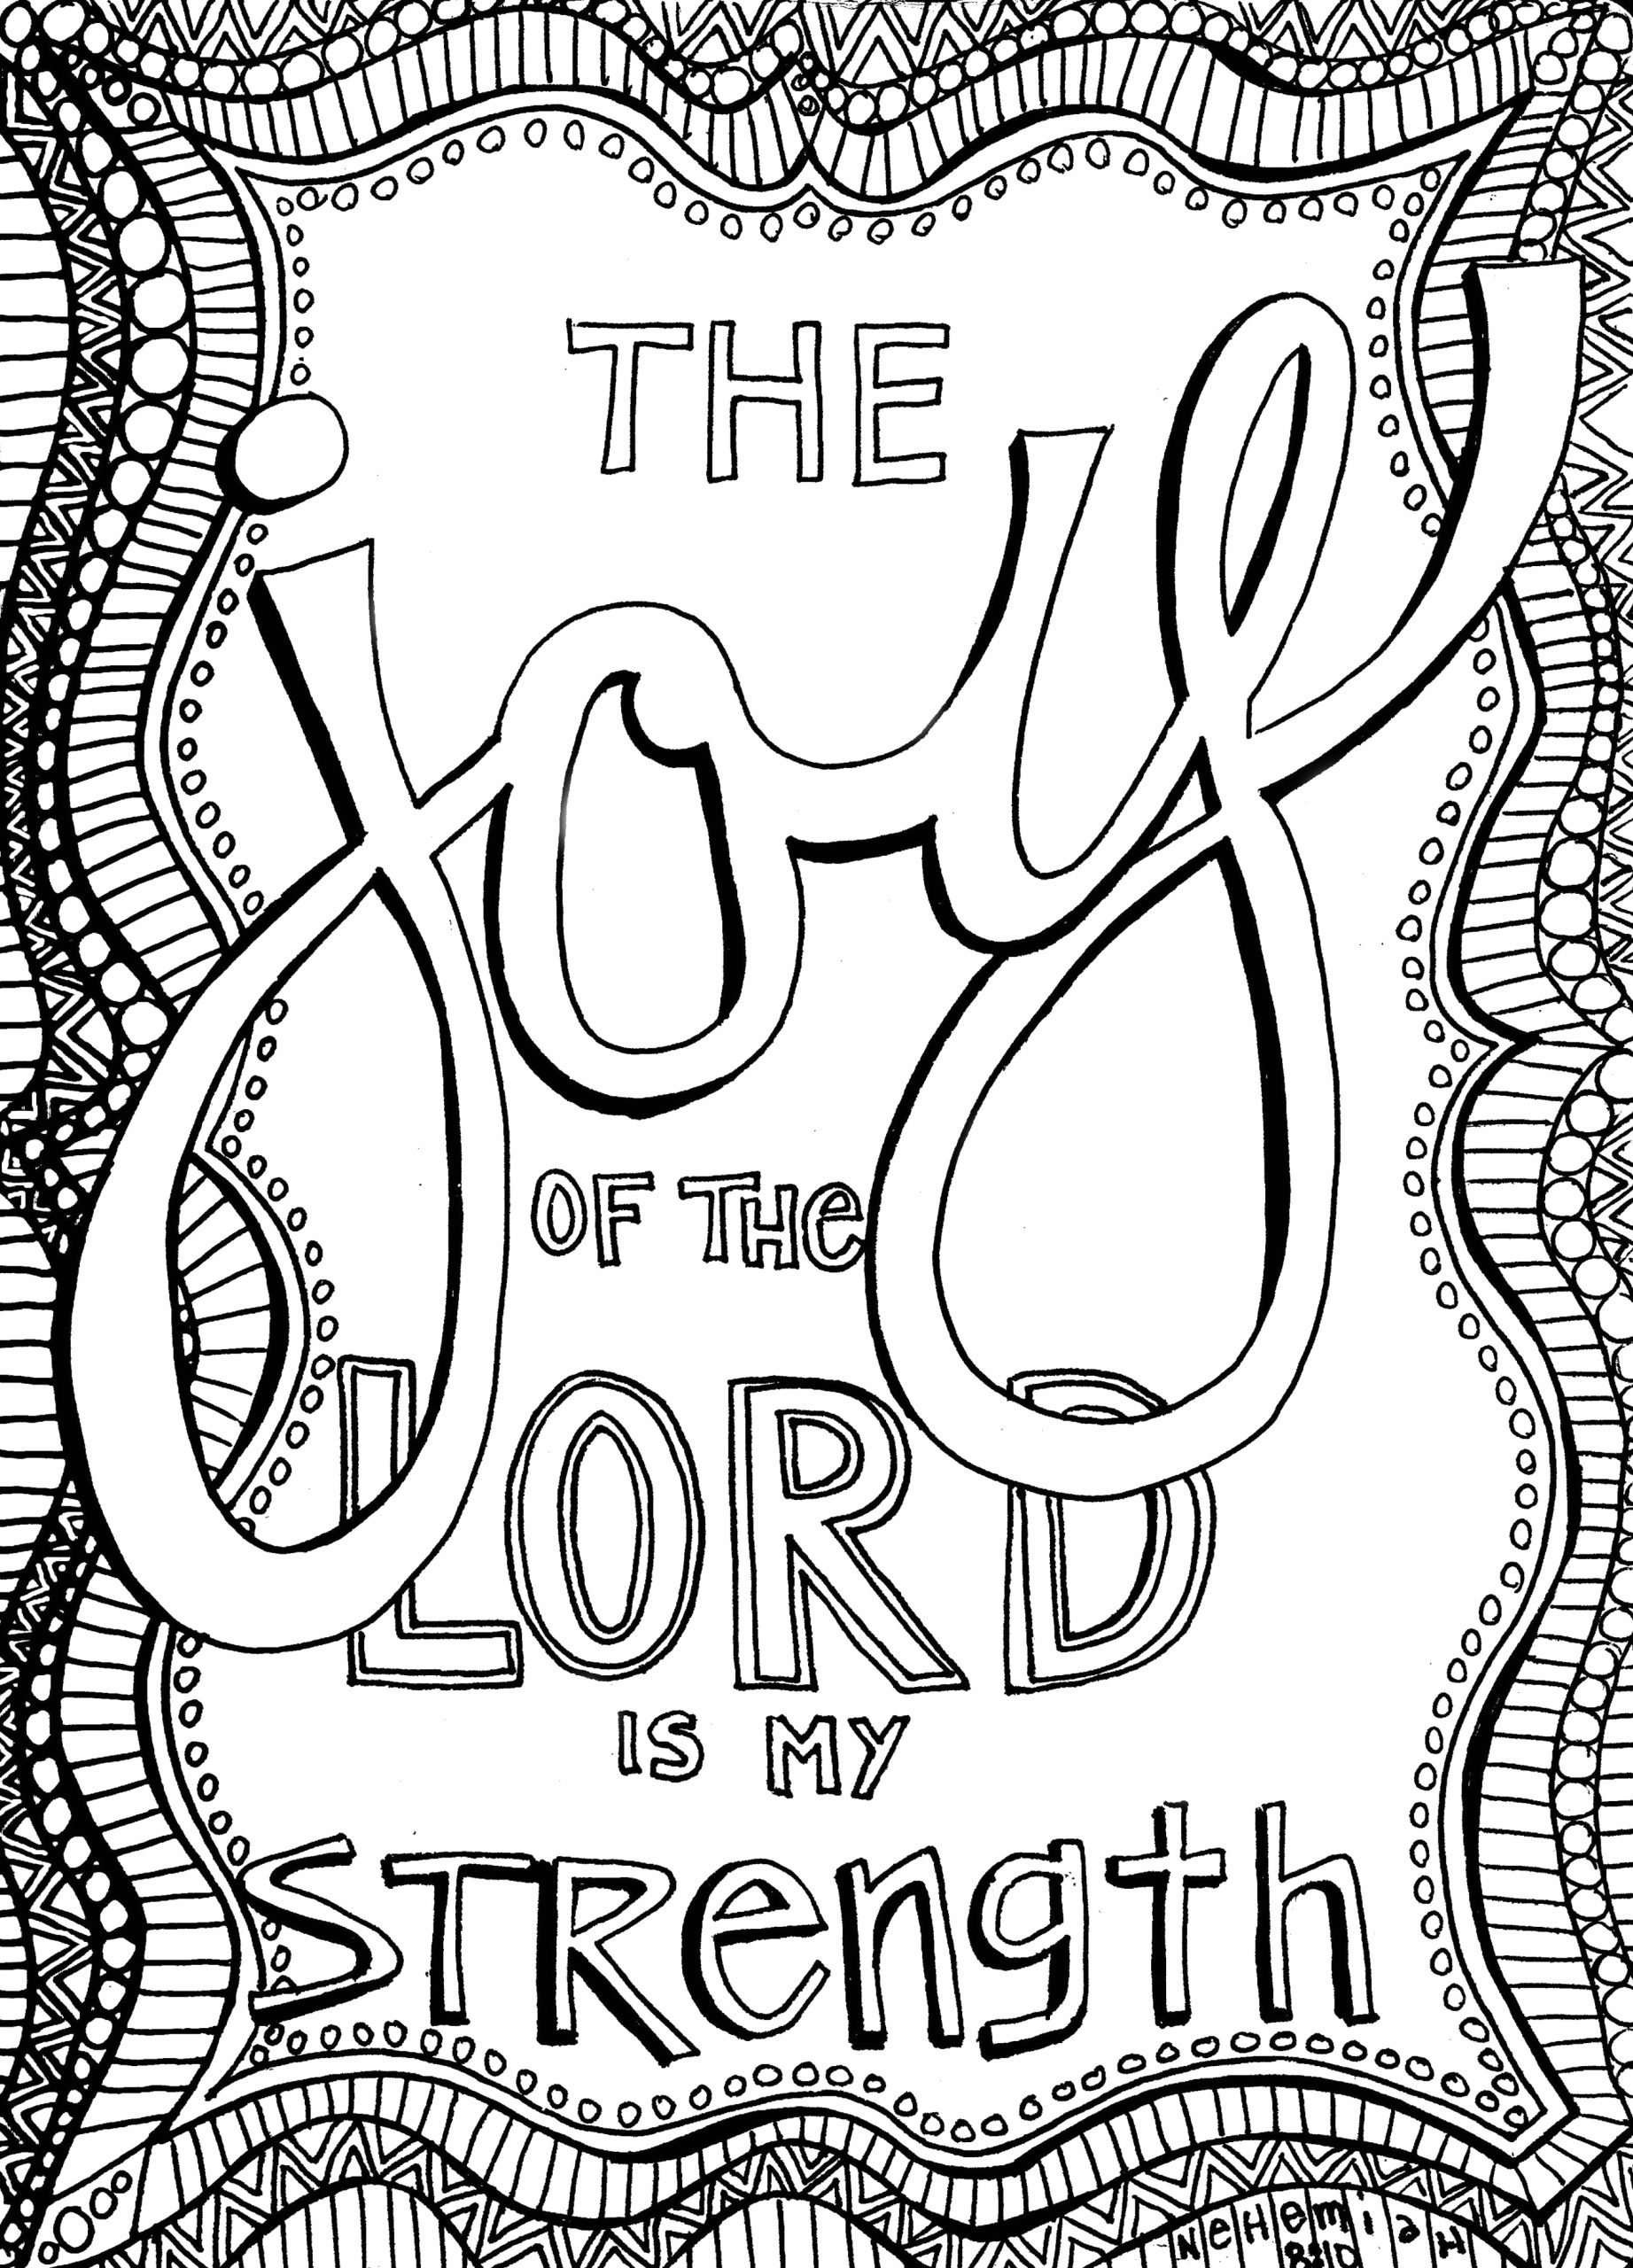 Free Printable Christian Coloring Pages for Adults Free Christian Coloring Pages for Adults Roundup